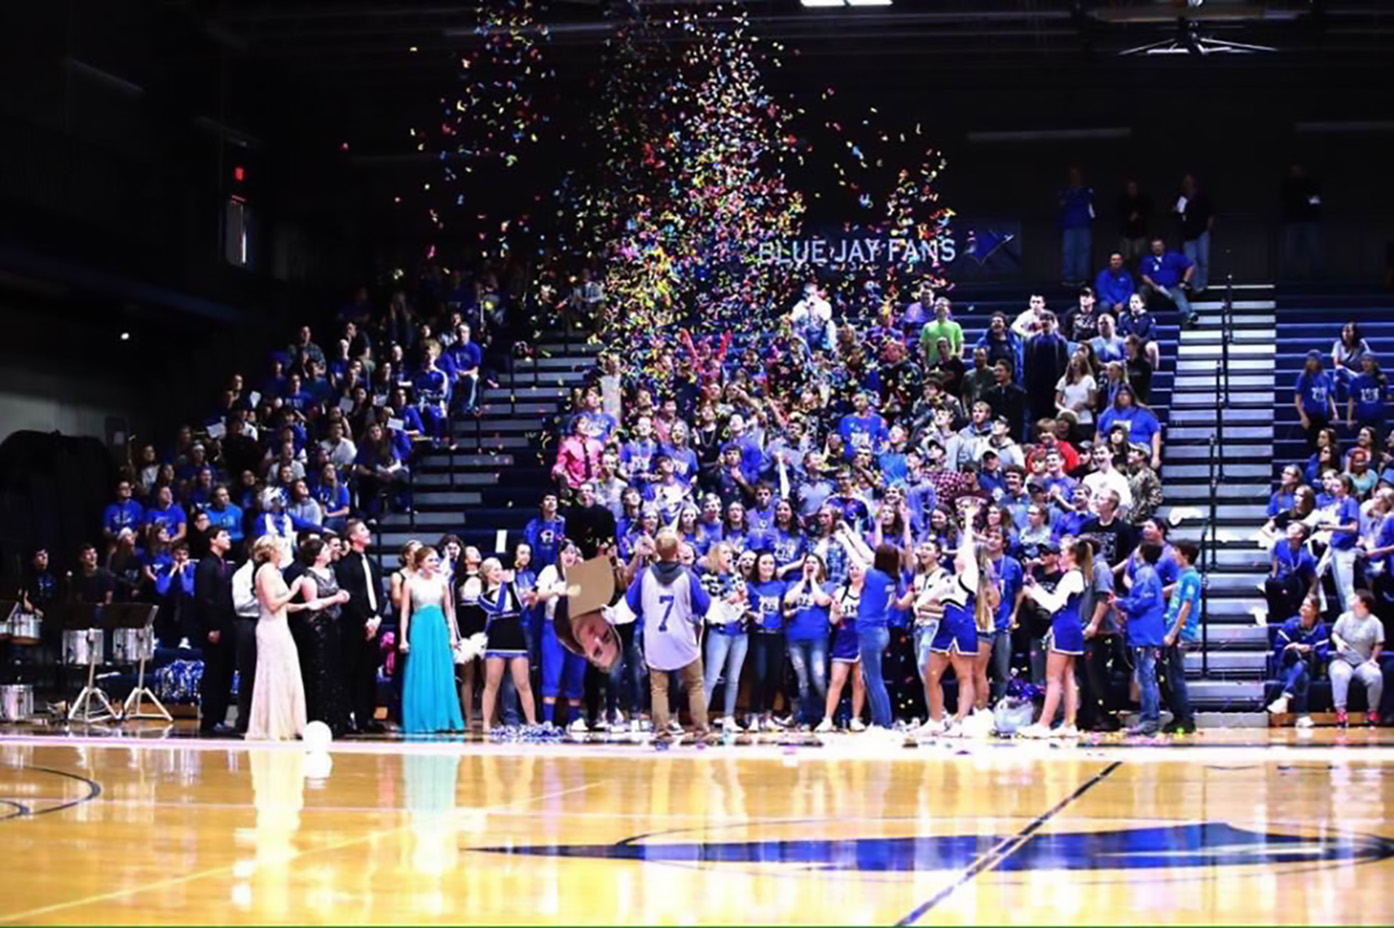 Senior Class of 2017 at the Homecoming Pep Rally